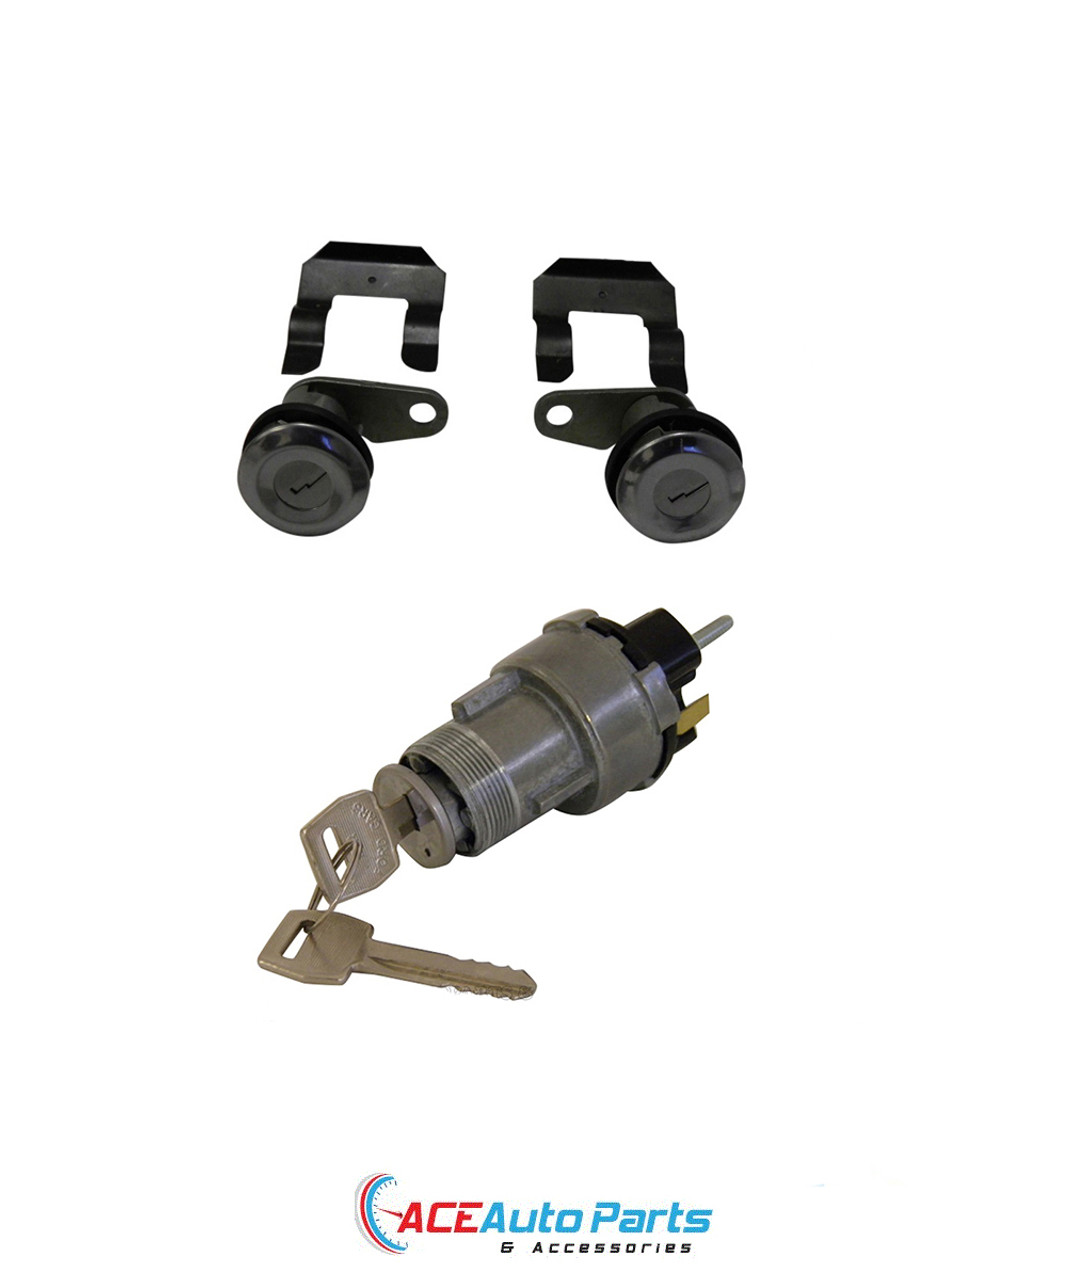 Ignition Switch + Door Lock Set For Ford XR XT XW XY Falcon